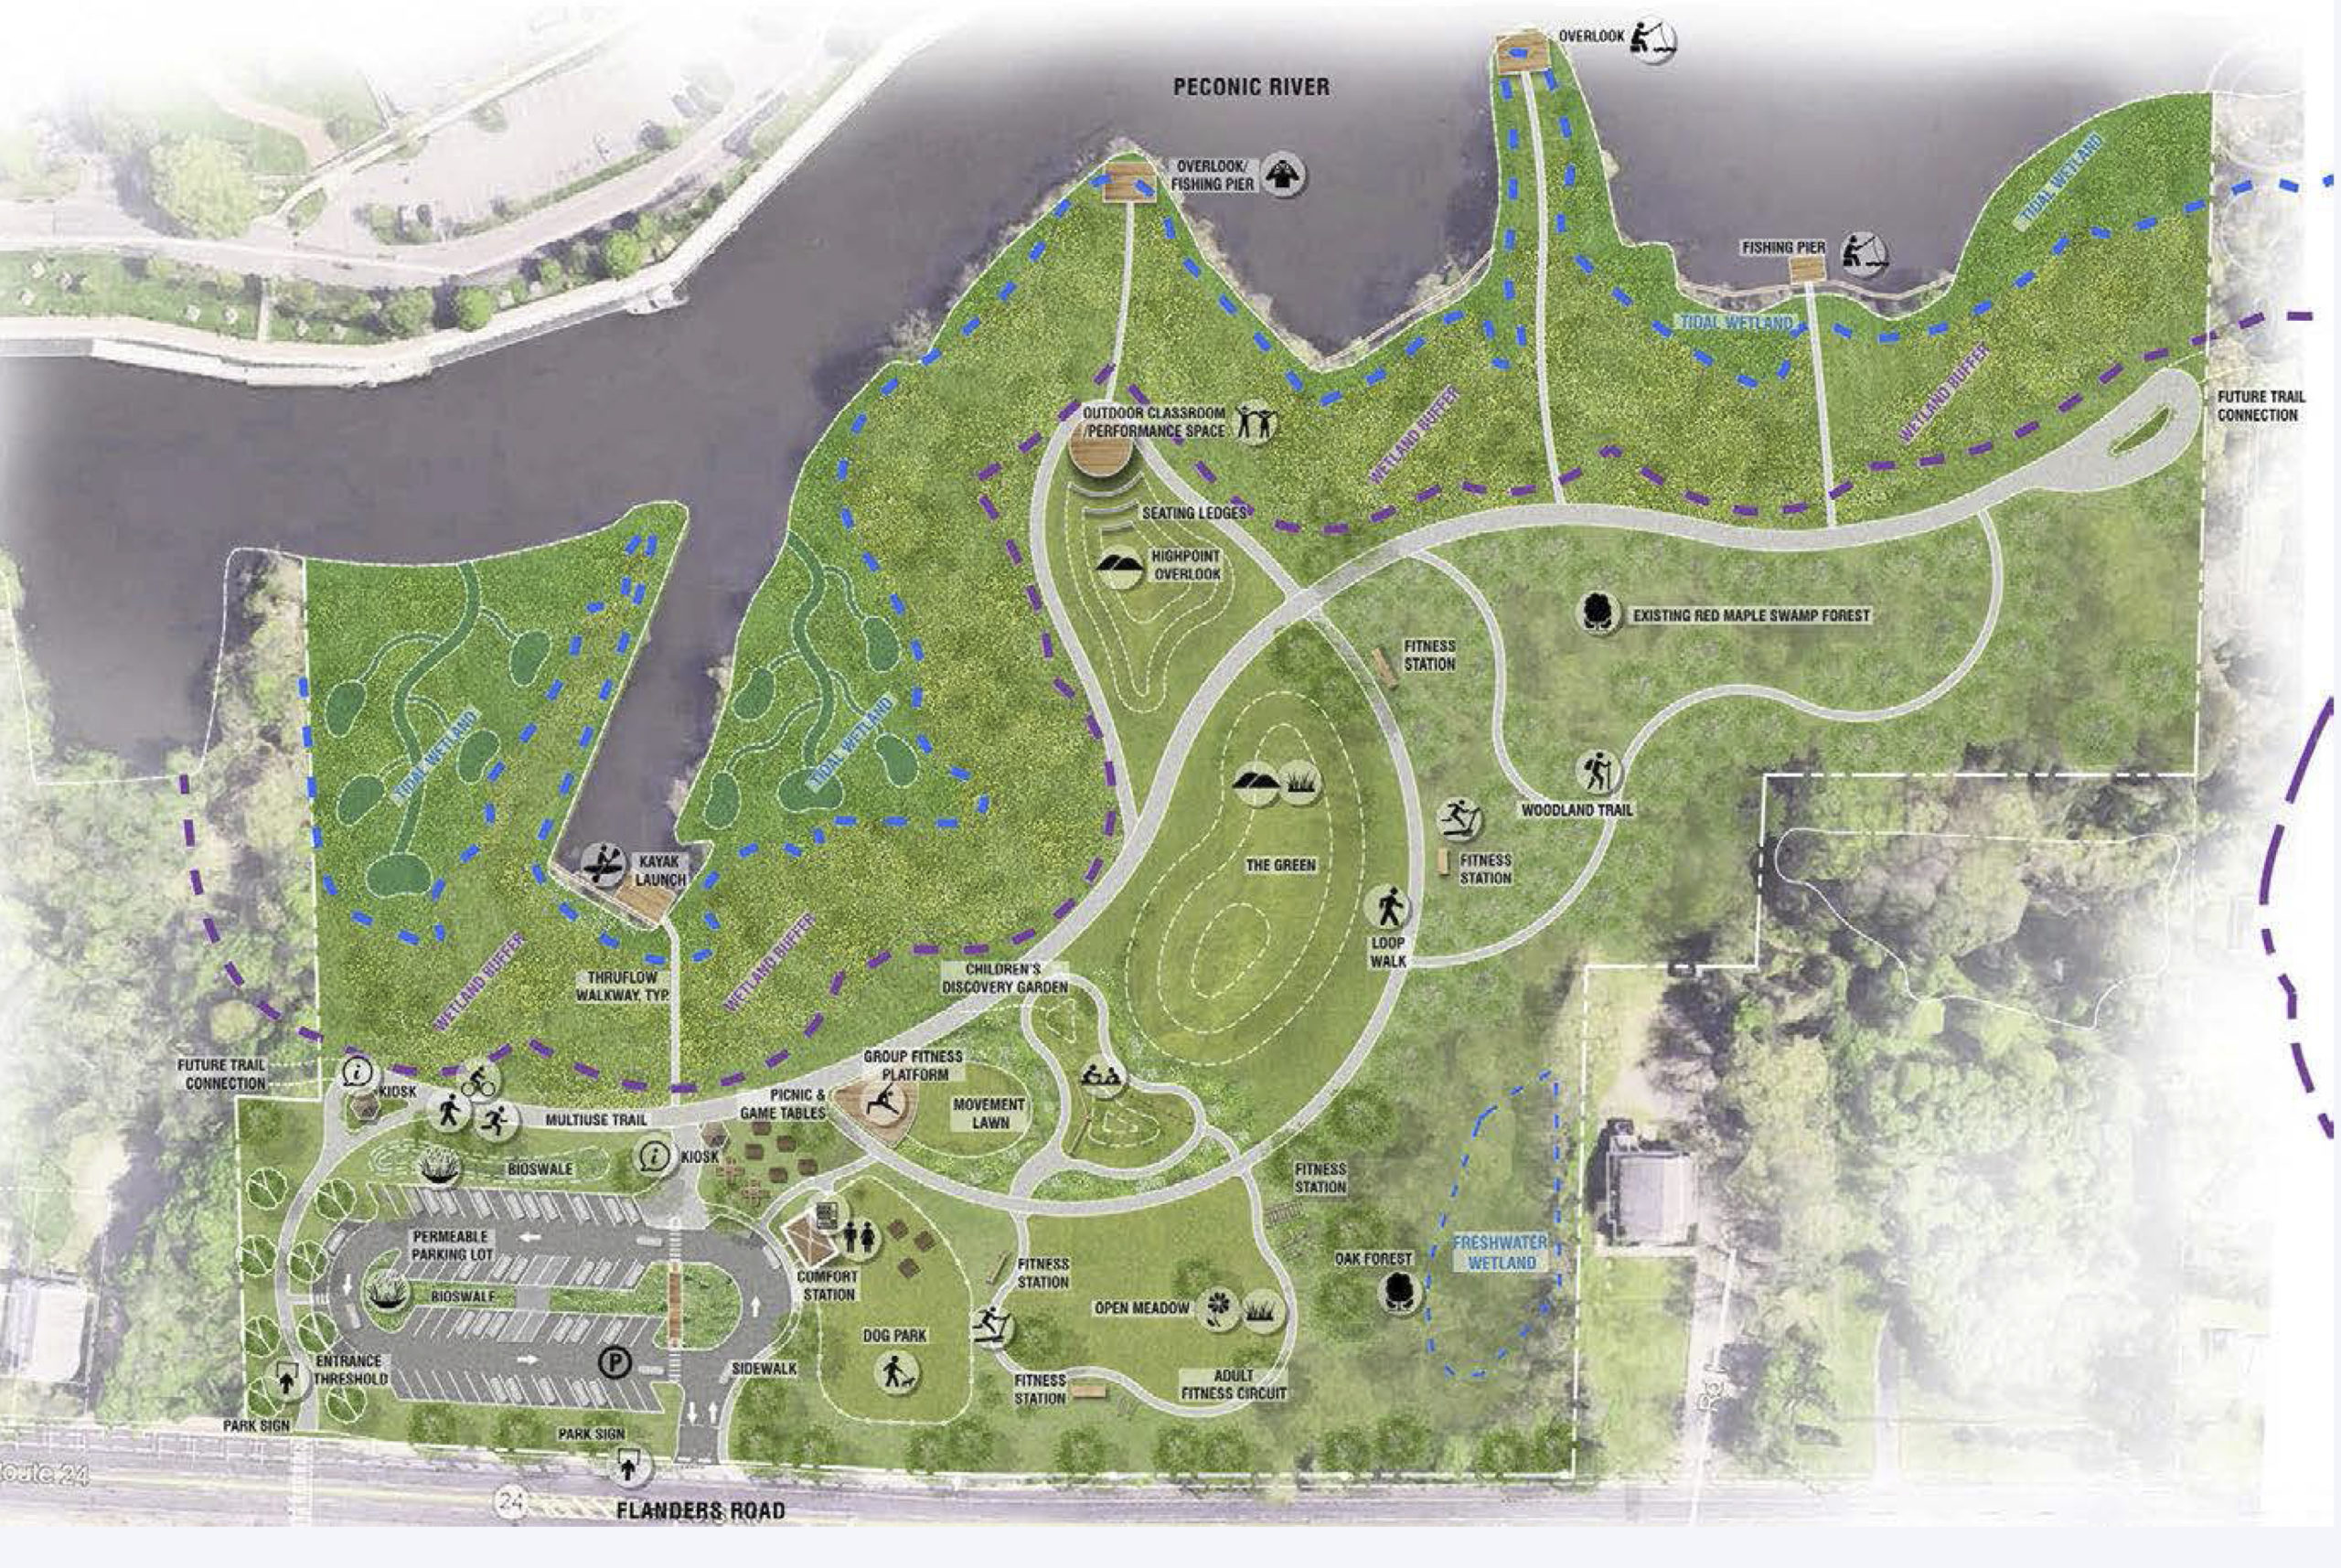 The design of the propsed park in Riverside.